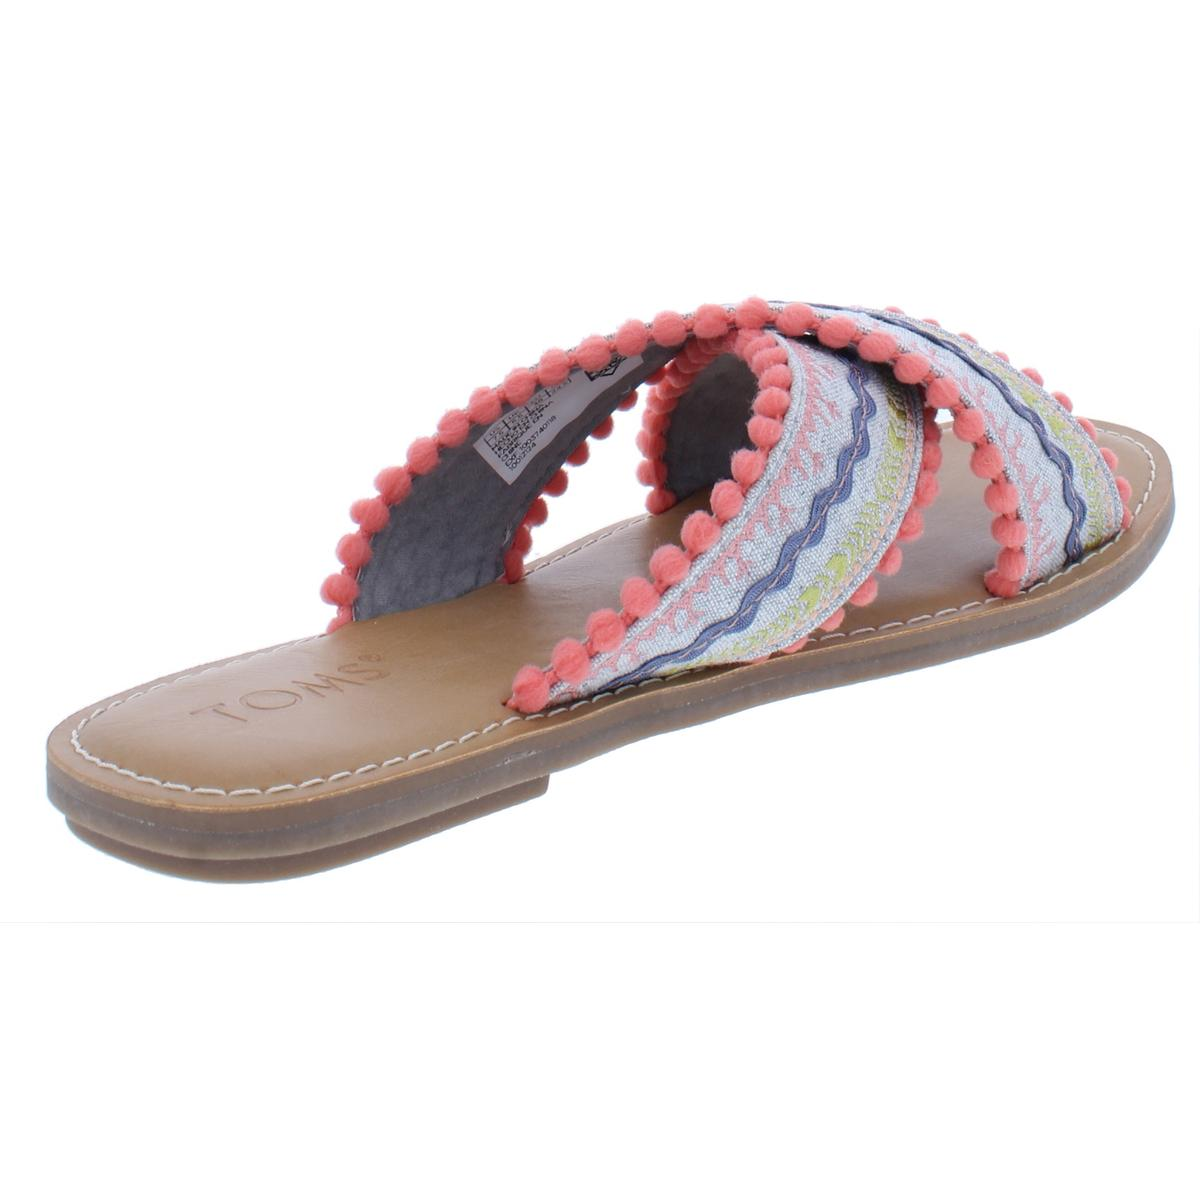 a82c8941cecf23 Toms Womens Viv Crossover Poms Casual Flat Sandals Shoes BHFO 7954 ...